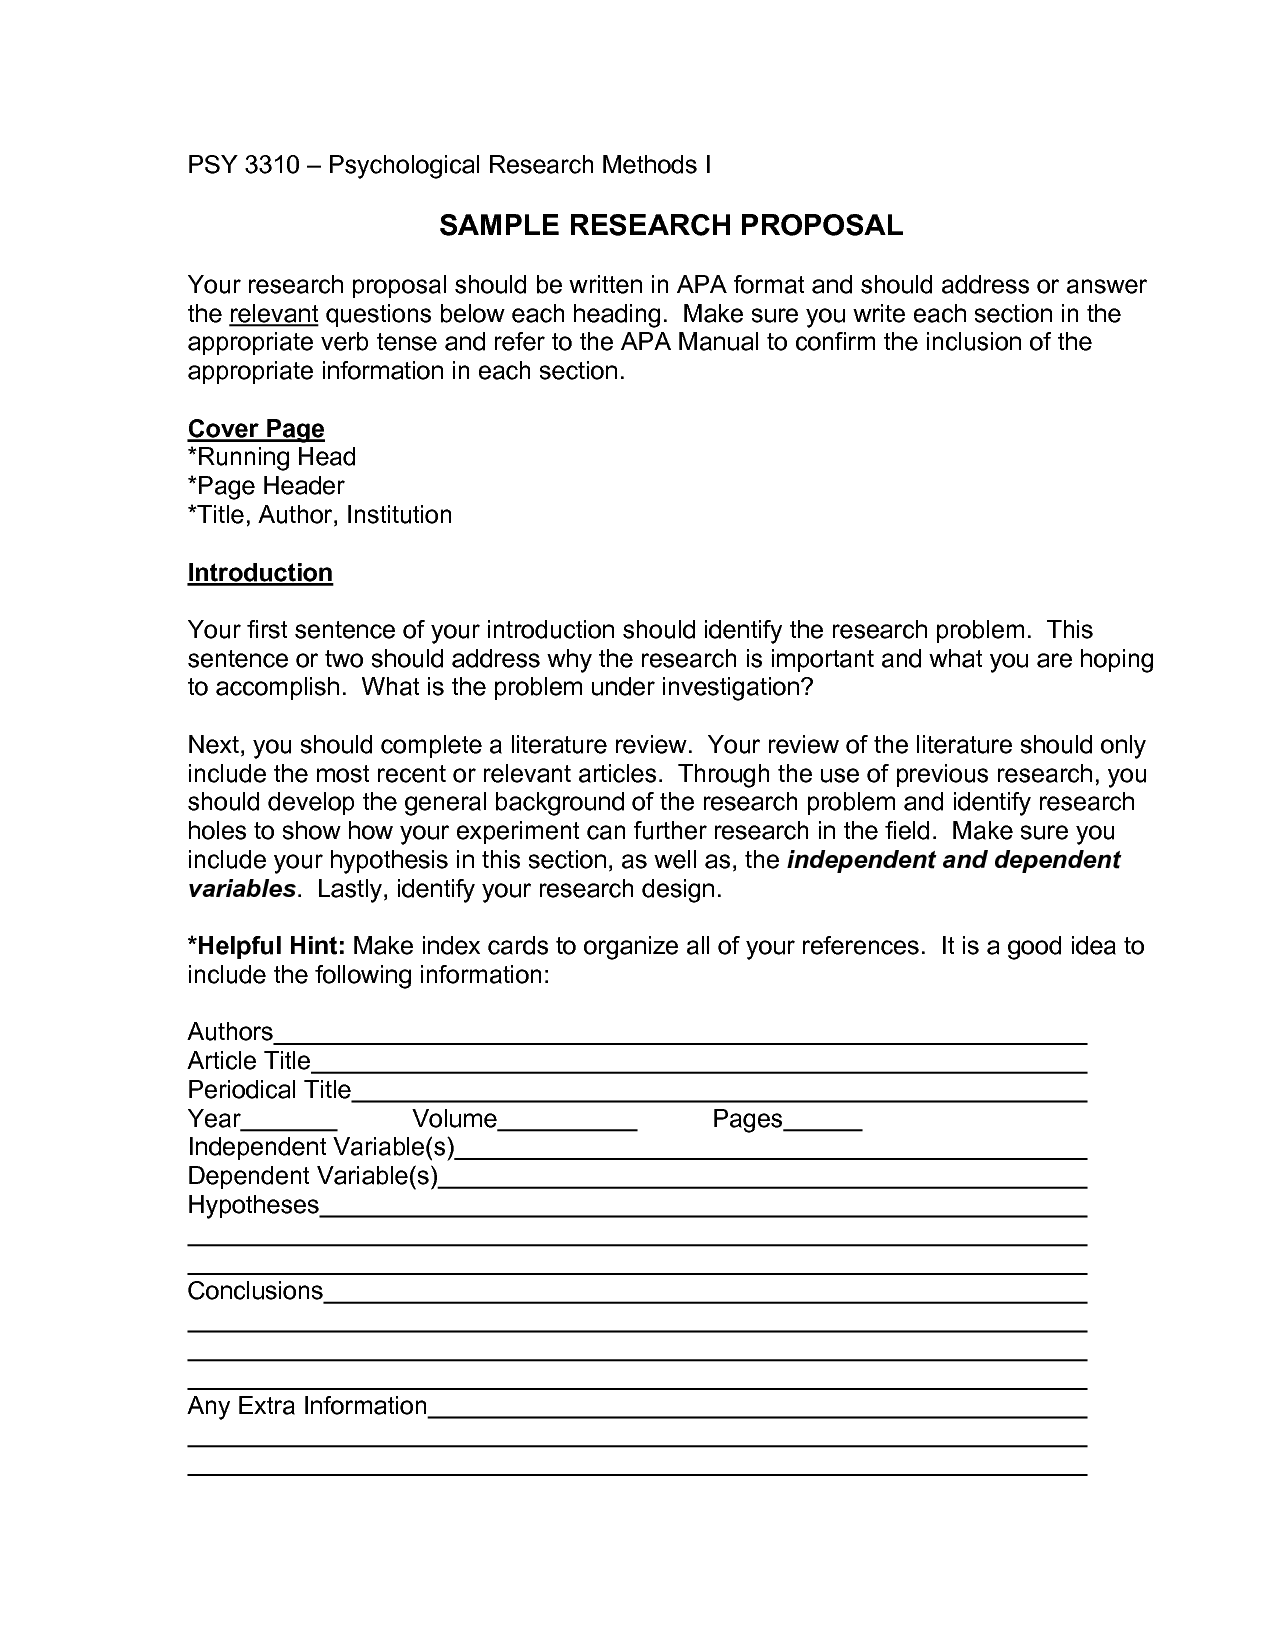 012 How To Write Research Paper Proposal Sample Apa Format Example 542911 Surprising A Template Examples Academic Full